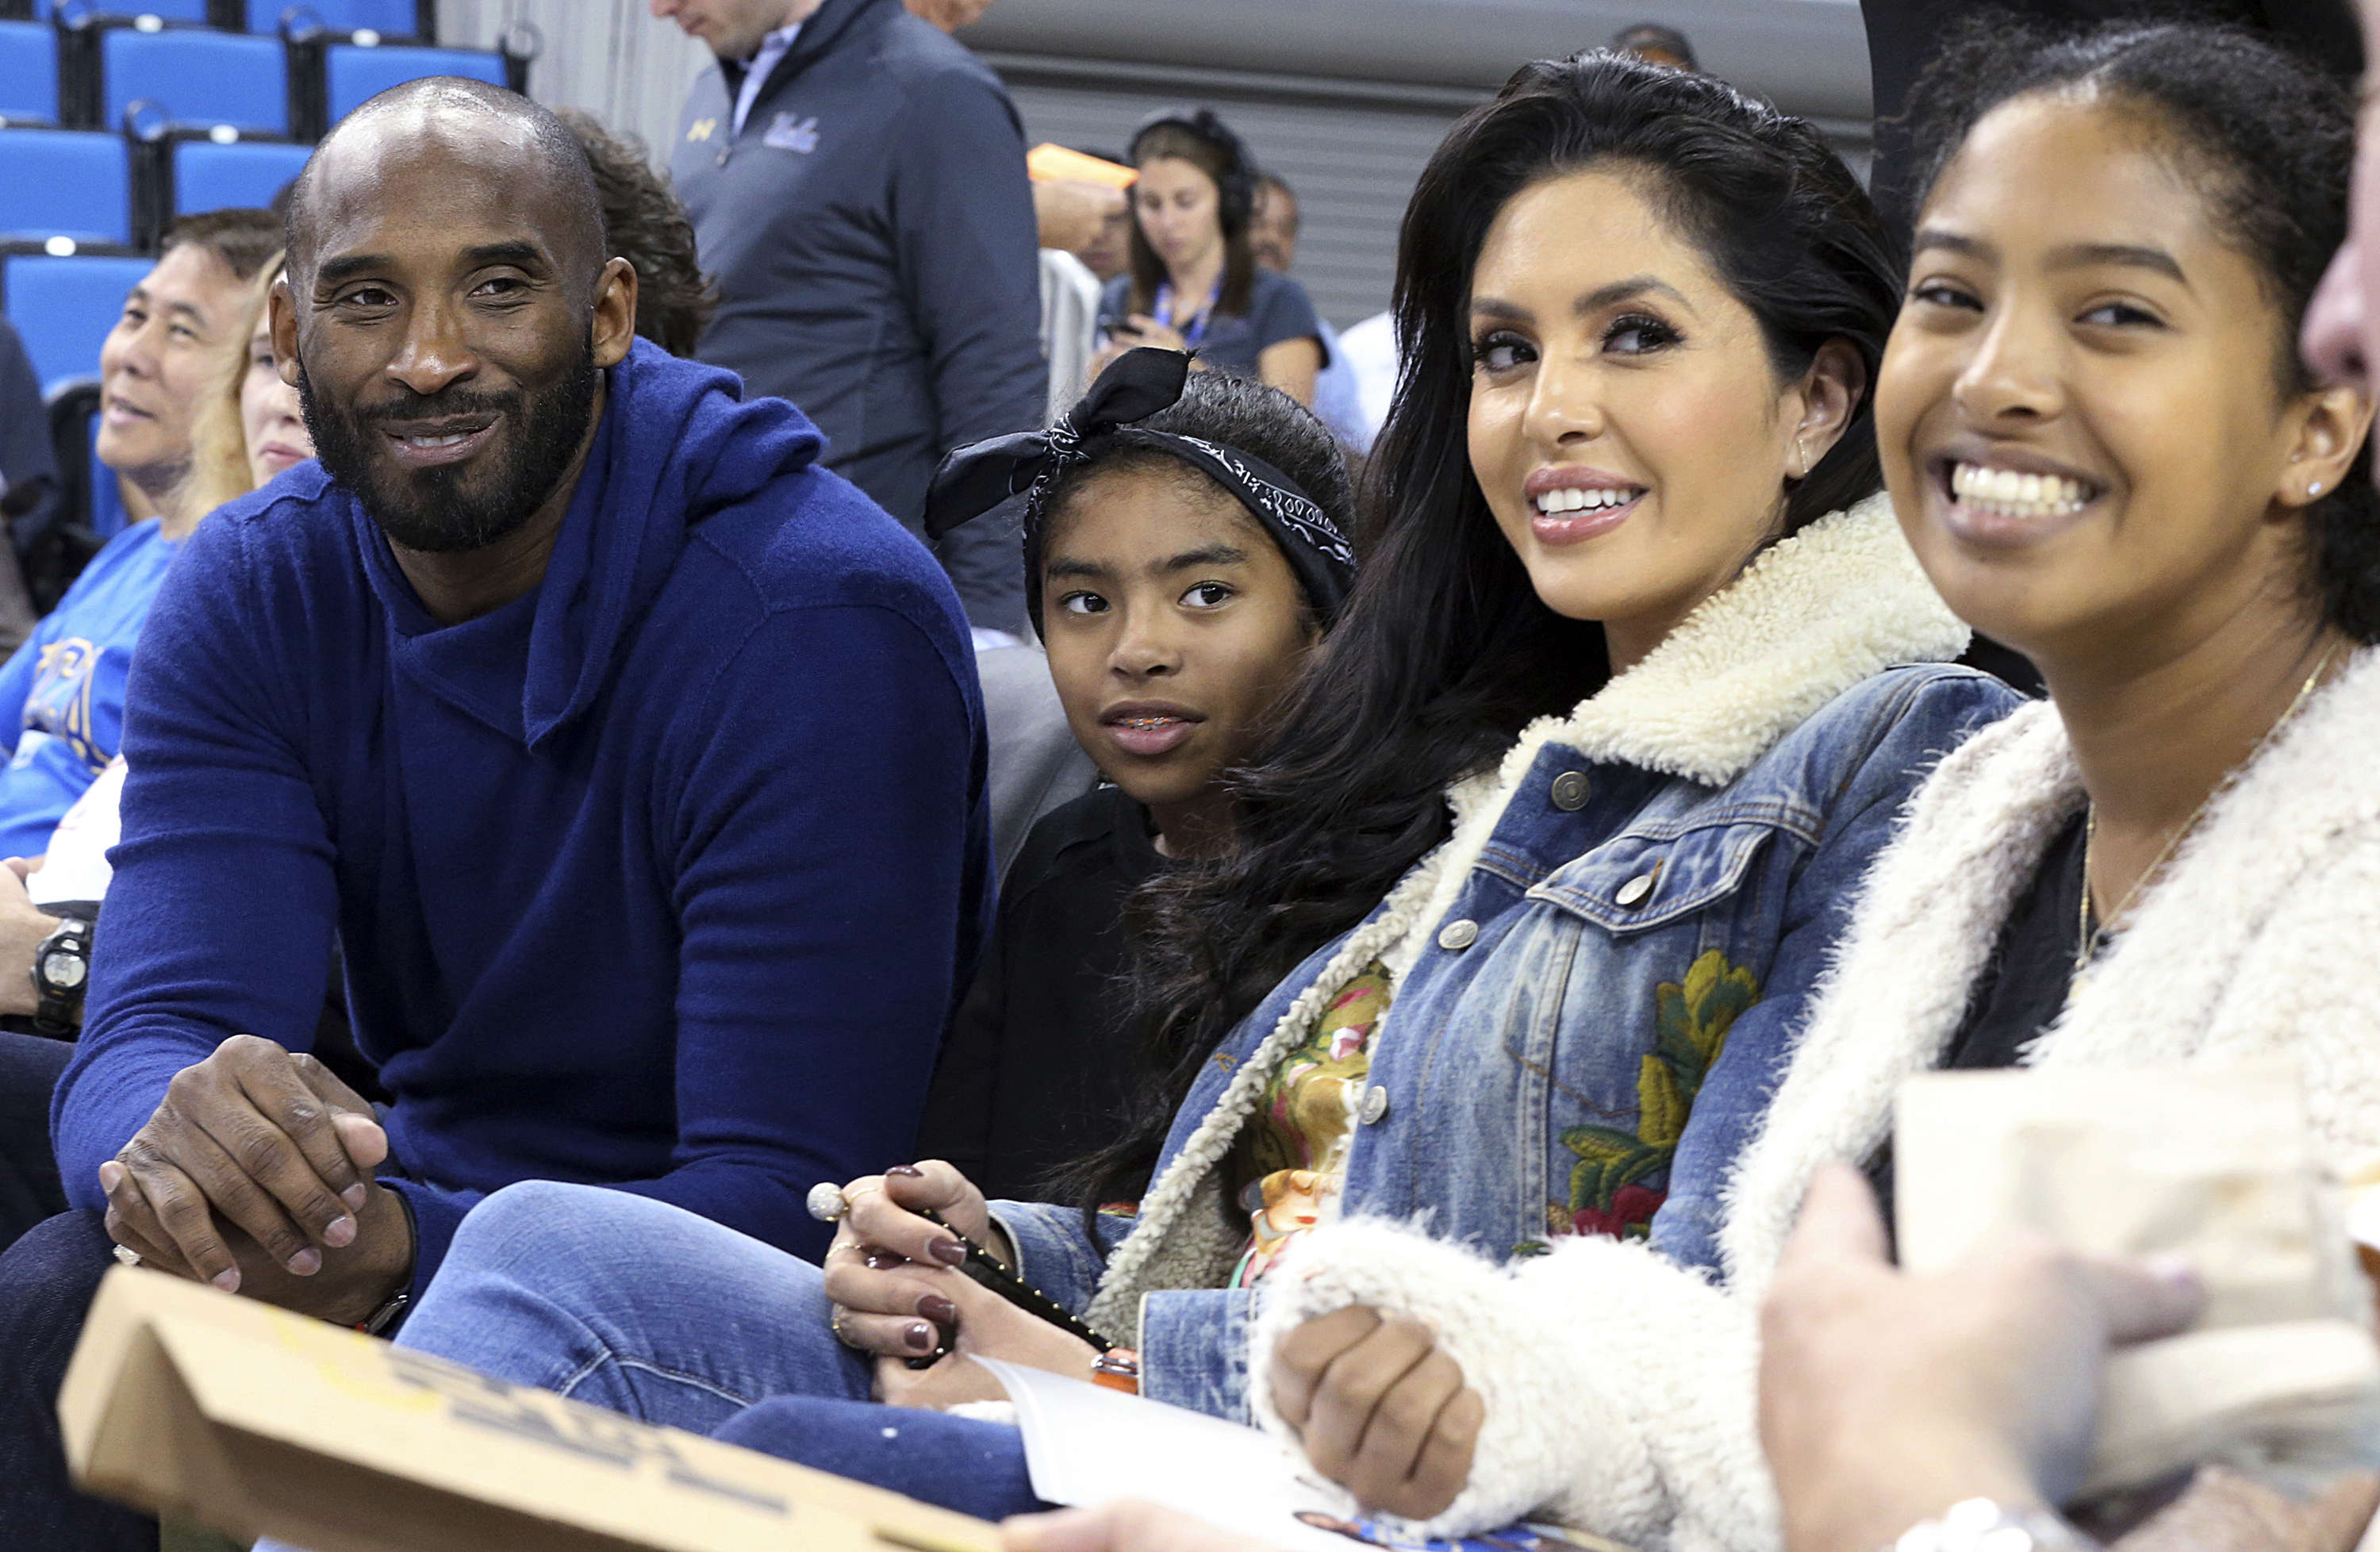 2017 file photo, from left: Kobe Bryant, his daughter Gianna Maria-Onore Bryant, wife Vanessa and daughter Natalia Diamante Bryant pose before a Connecticut-UCLA NCAA women's basketball game in Los Angeles.